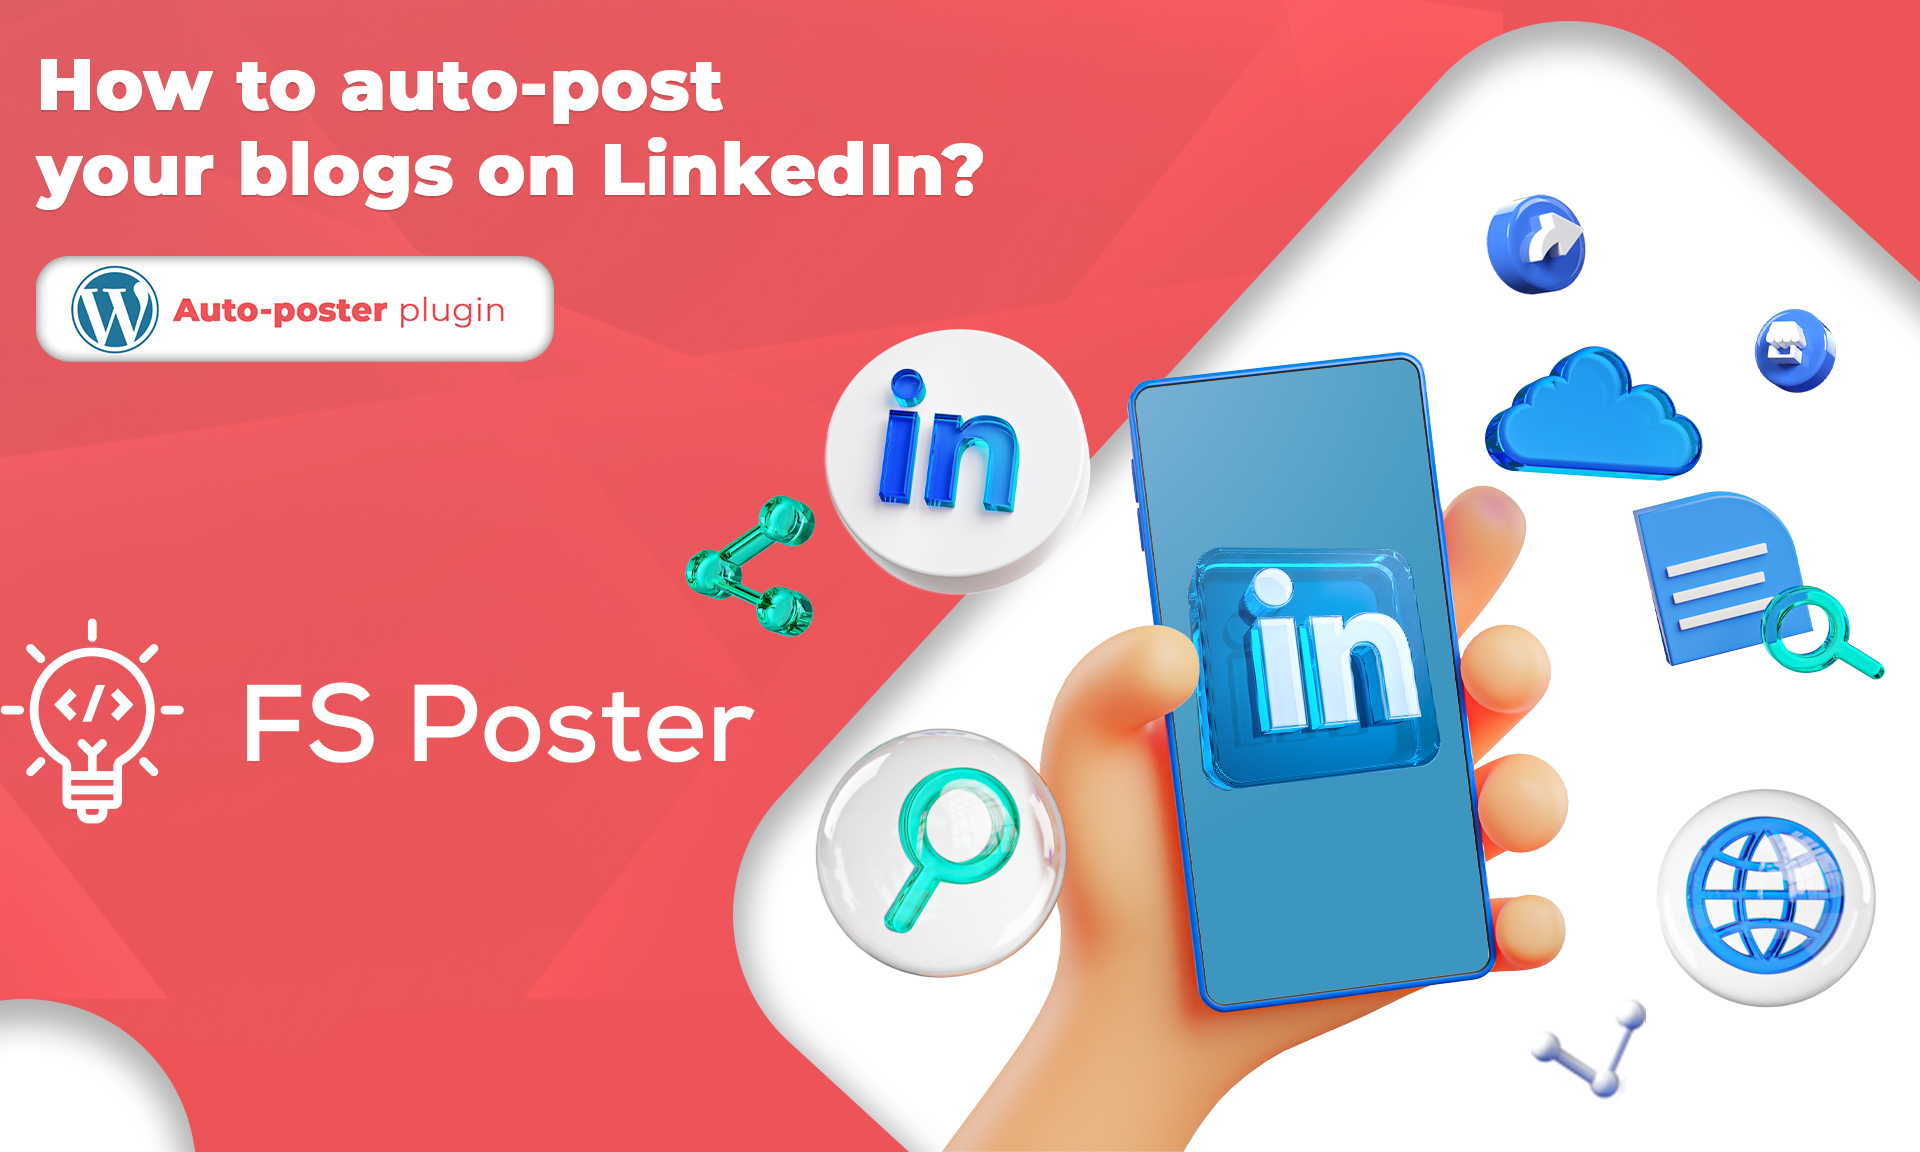 How to auto-post your blogs on LinkedIn?